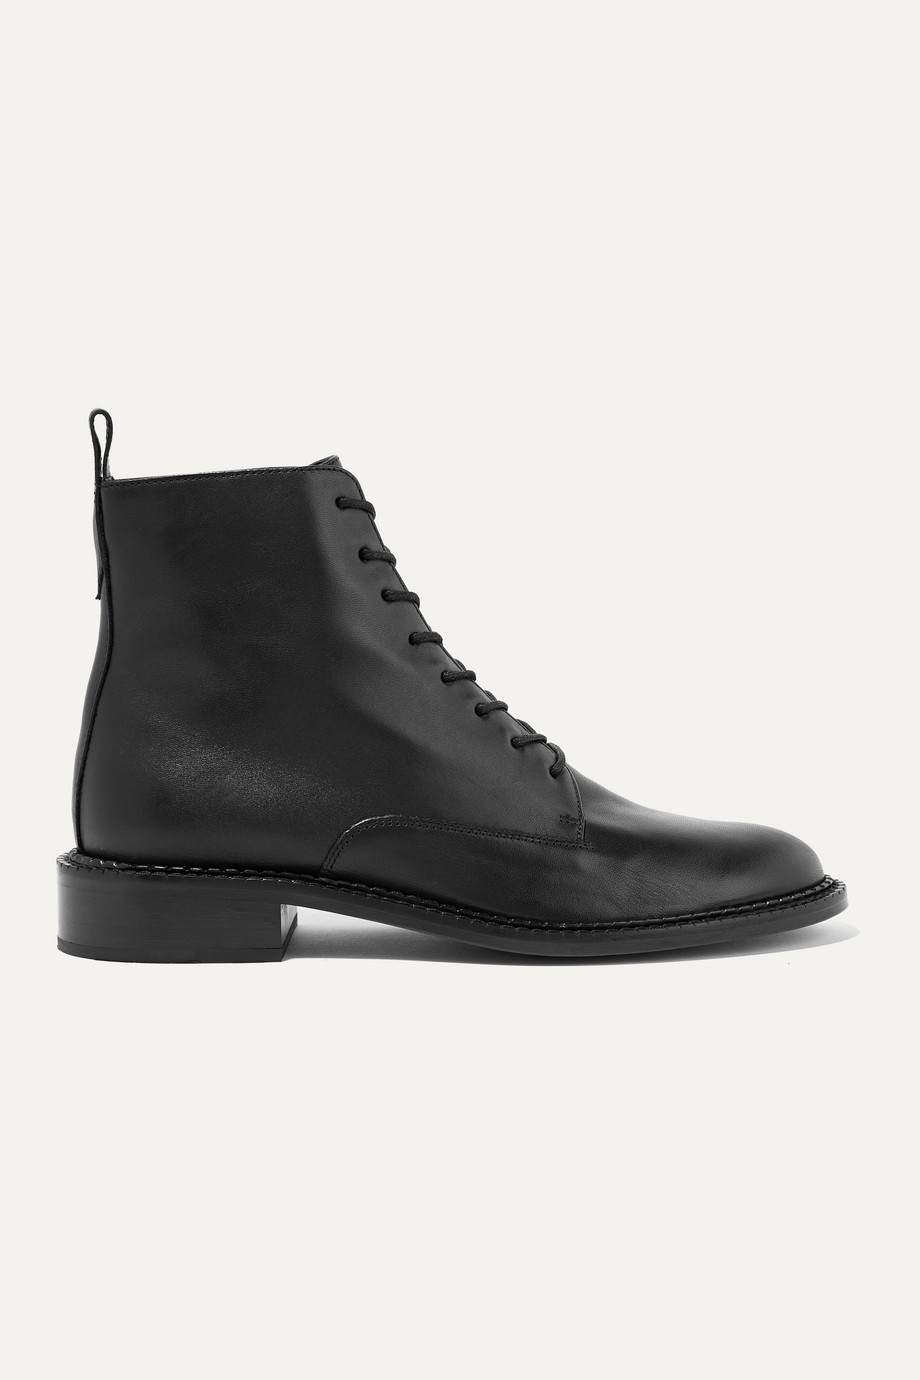 Vince Cabria leather ankle boots